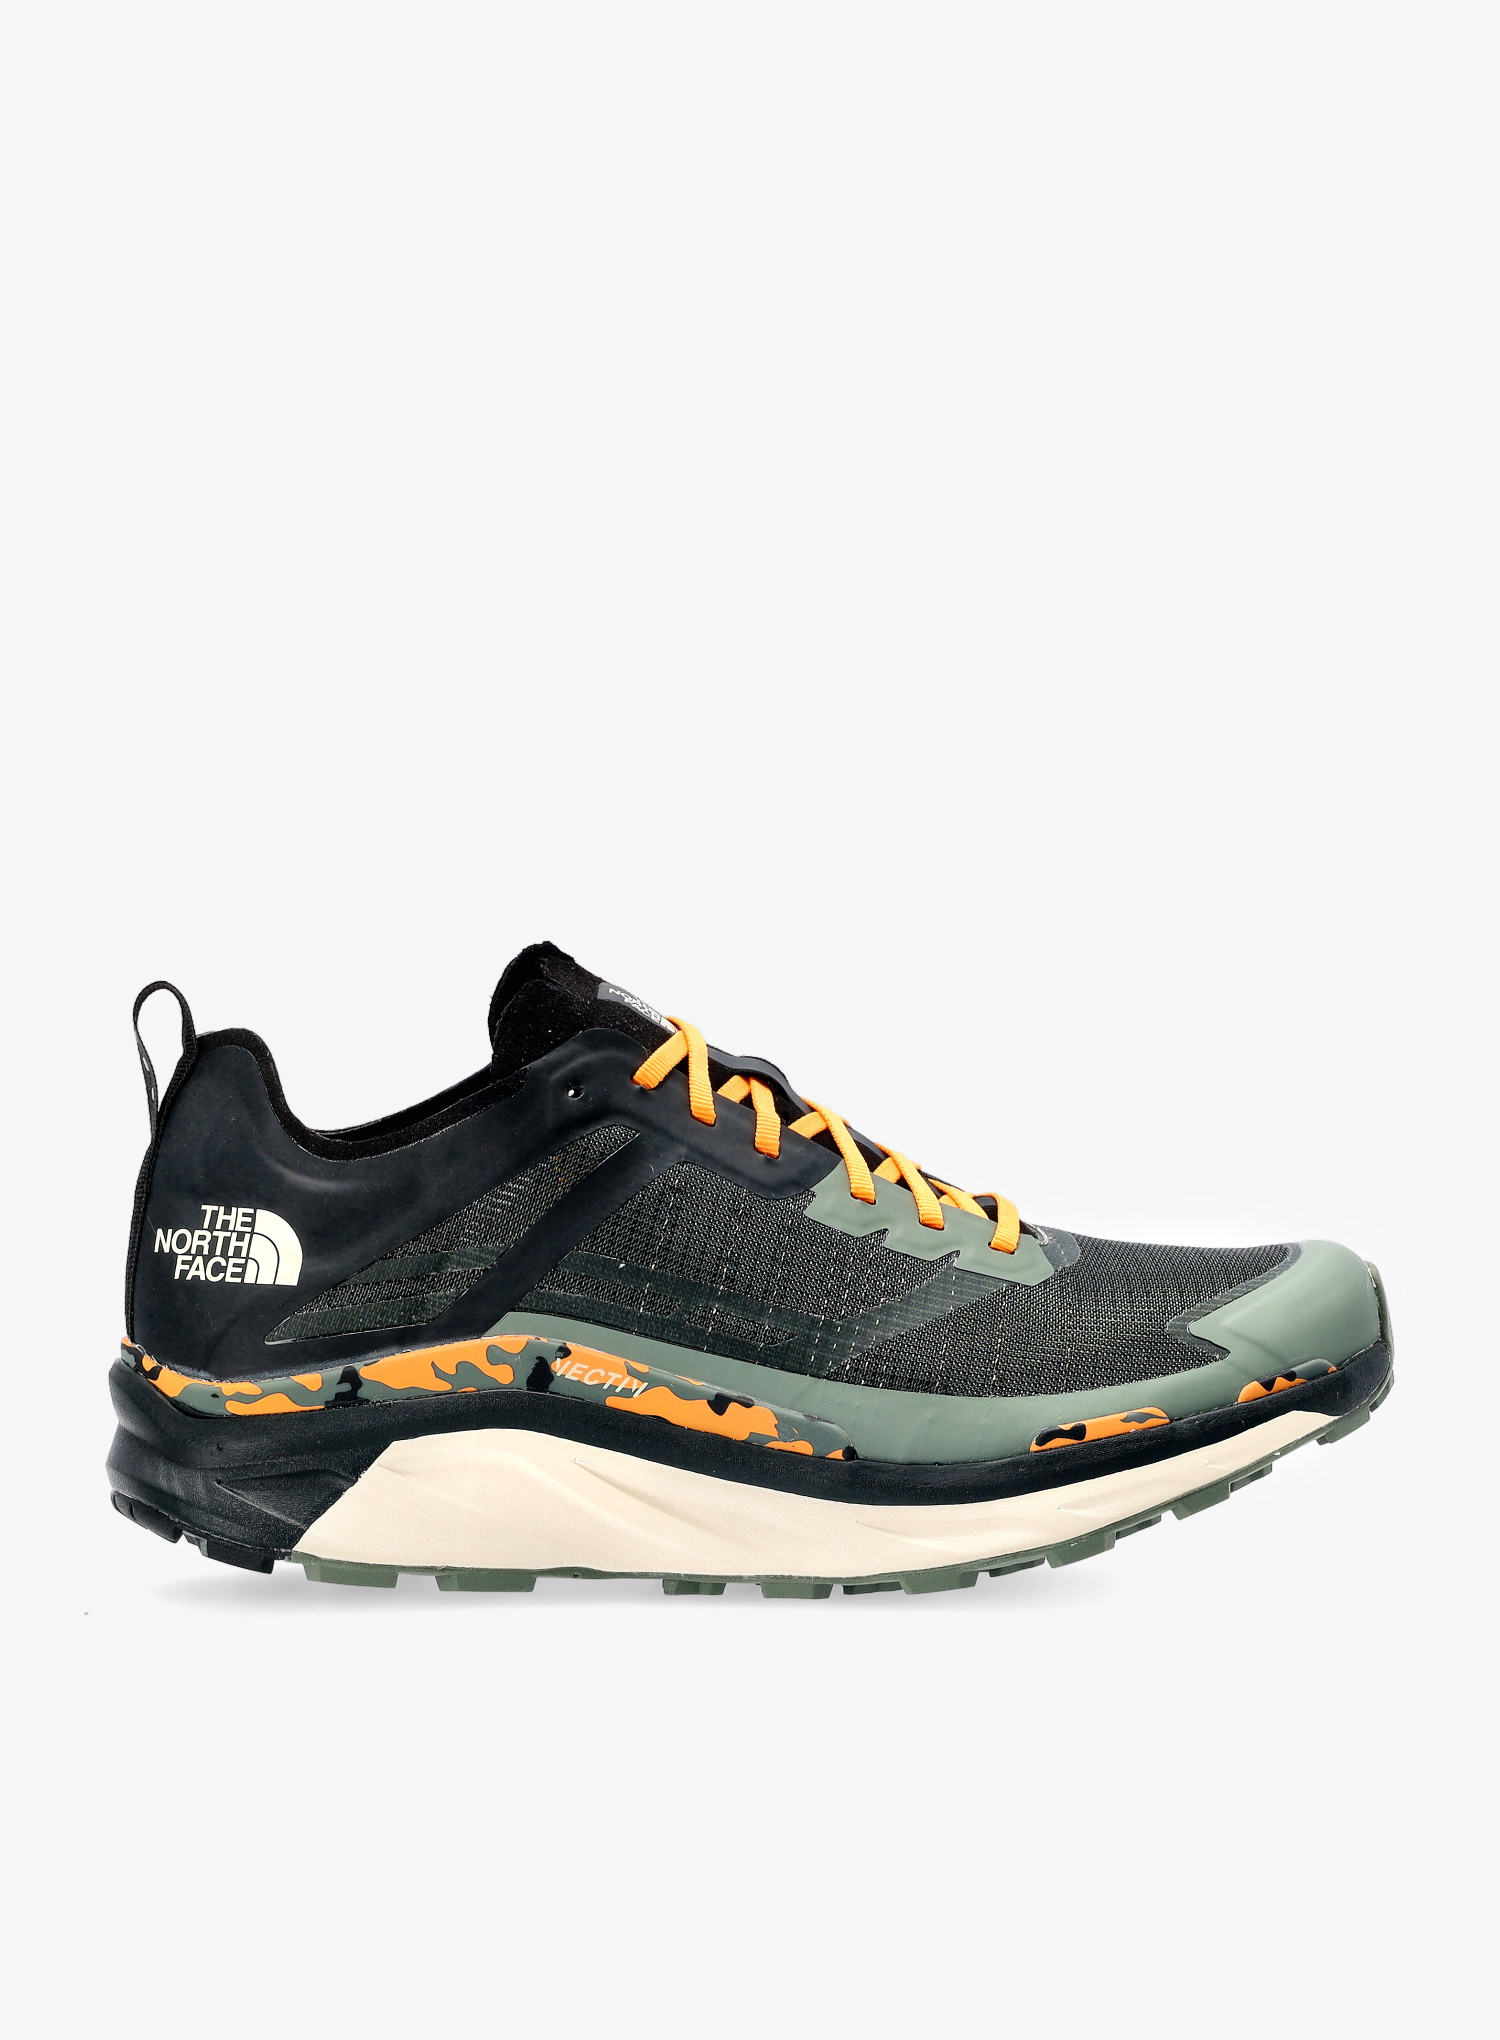 Buty trailowe The North Face Vectiv Infinite LTD - agave green/gold - zdjęcie nr. 1